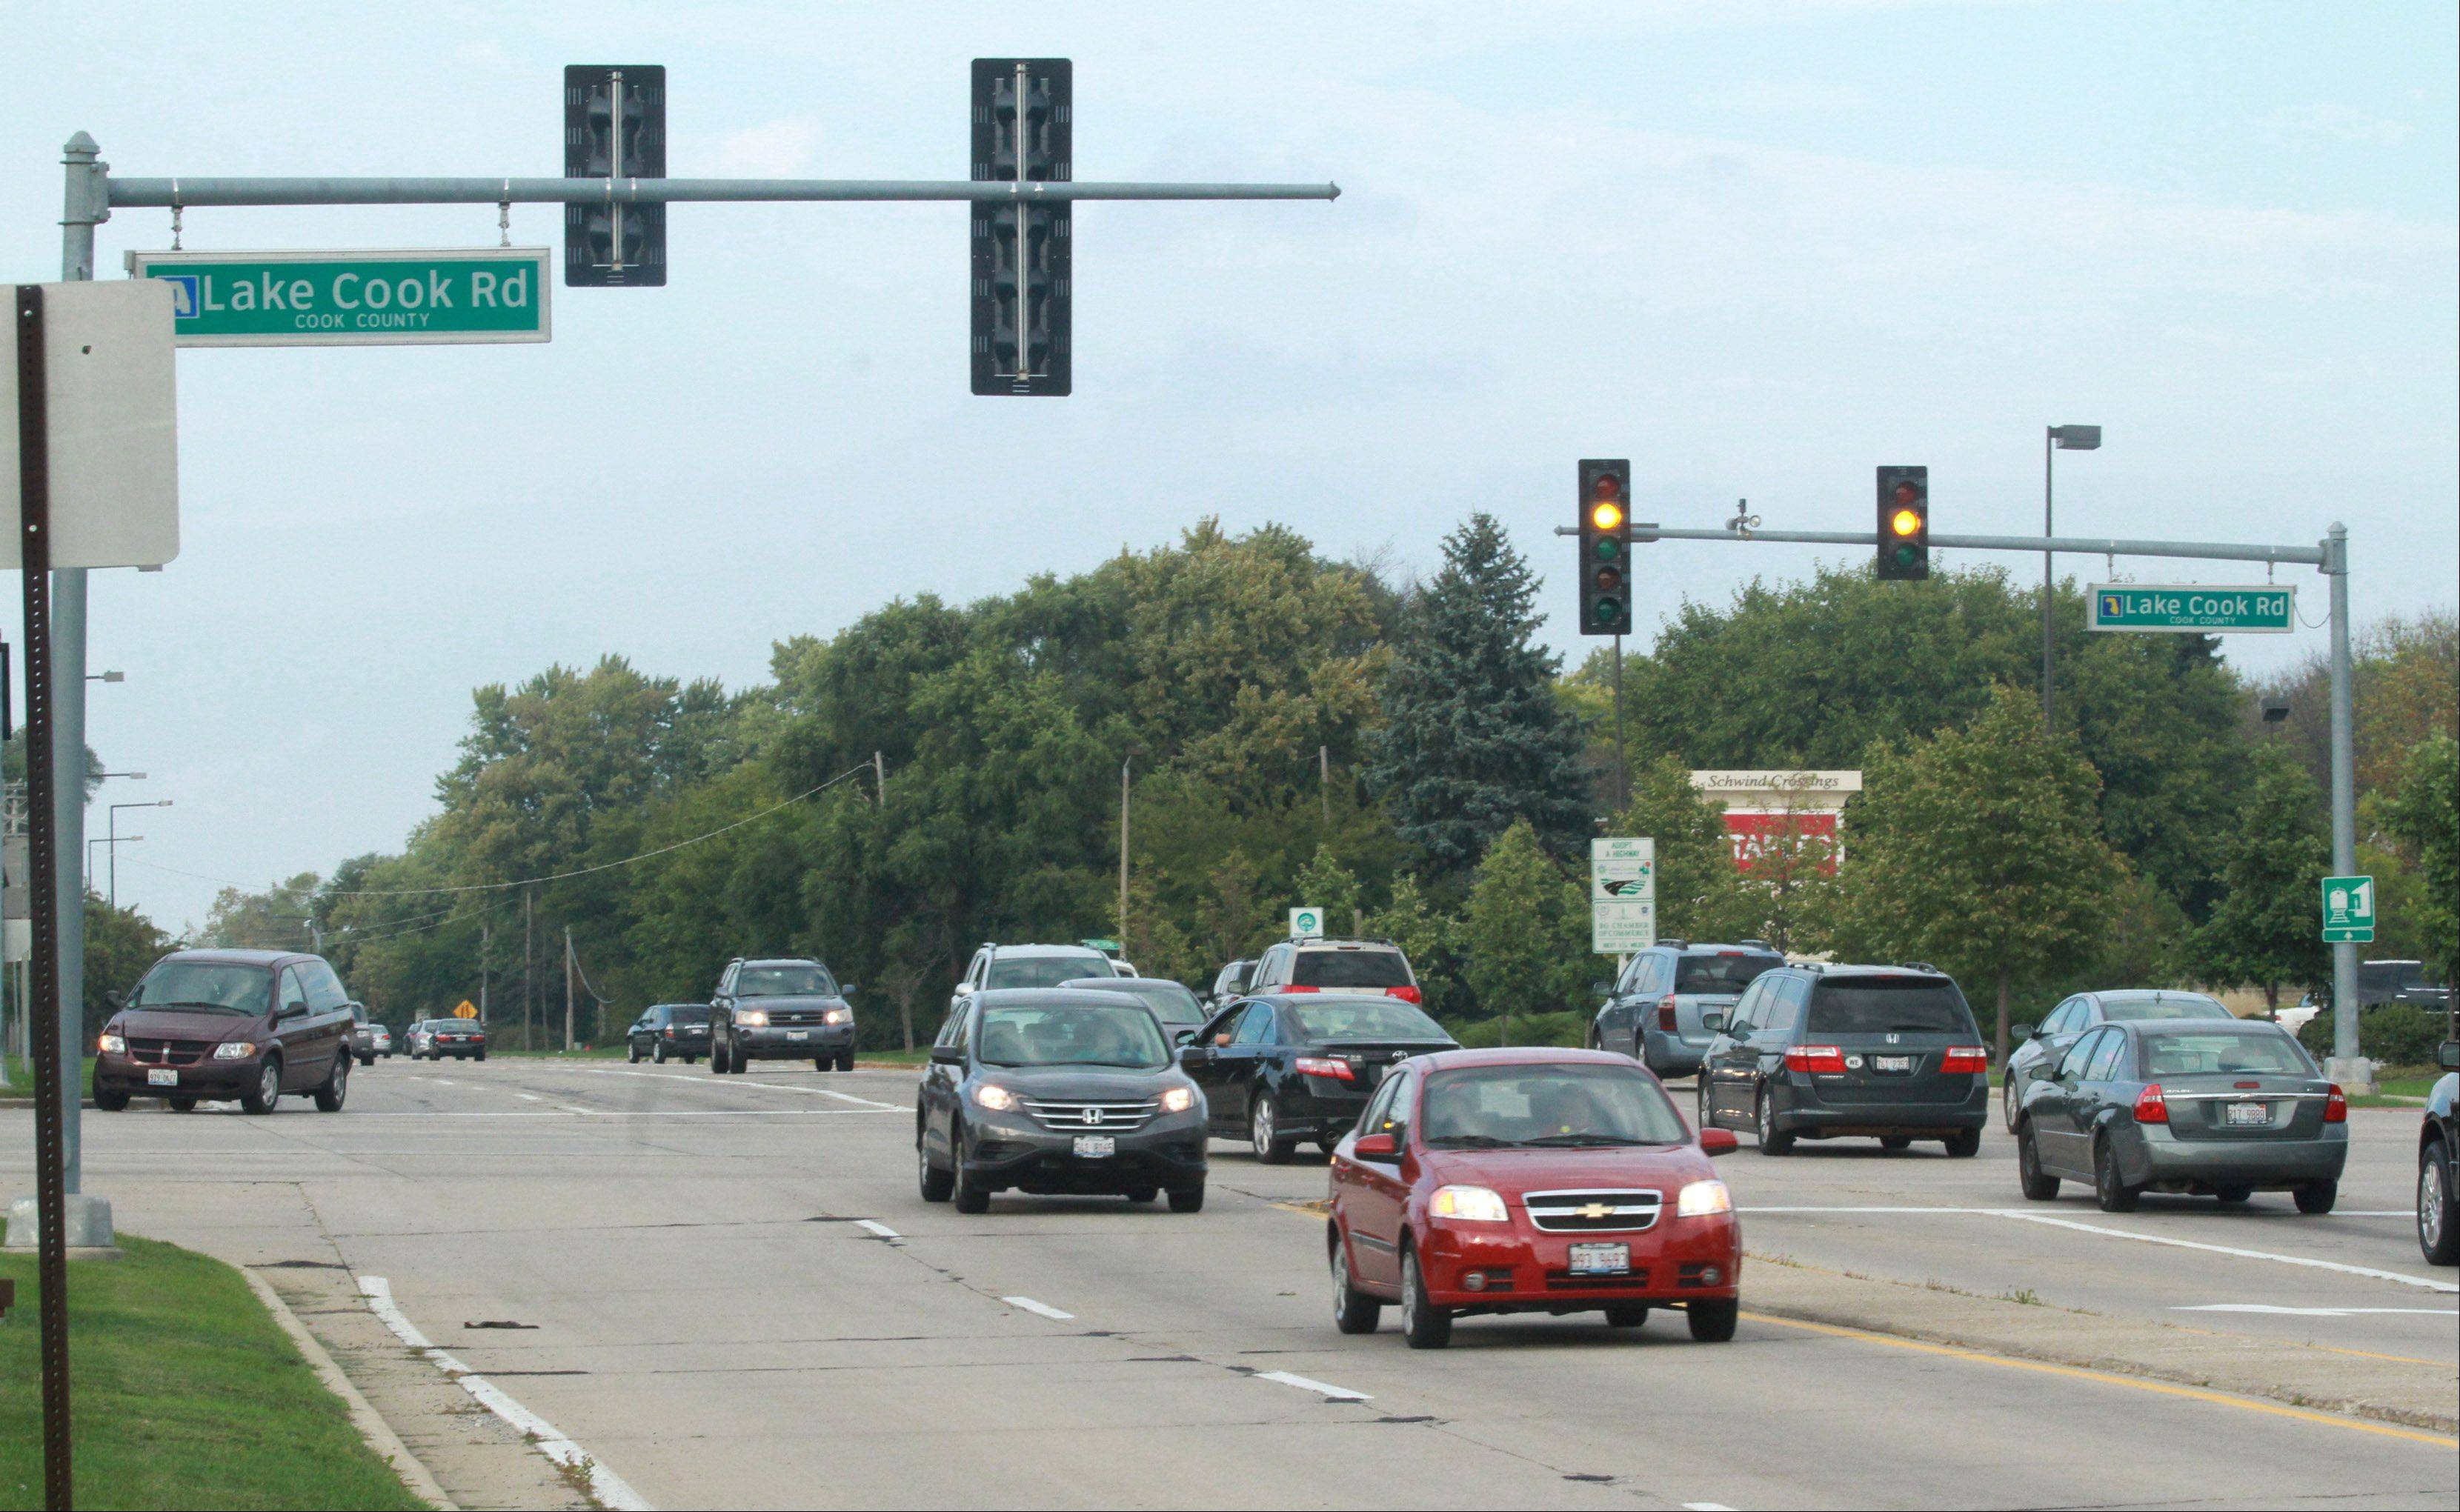 A $100 million road improvement plan that would widen Weiland and Lake-Cook roads in Buffalo Grove to ease traffic congestion is drawing some opposition from residents who say the project will cost them their homes.